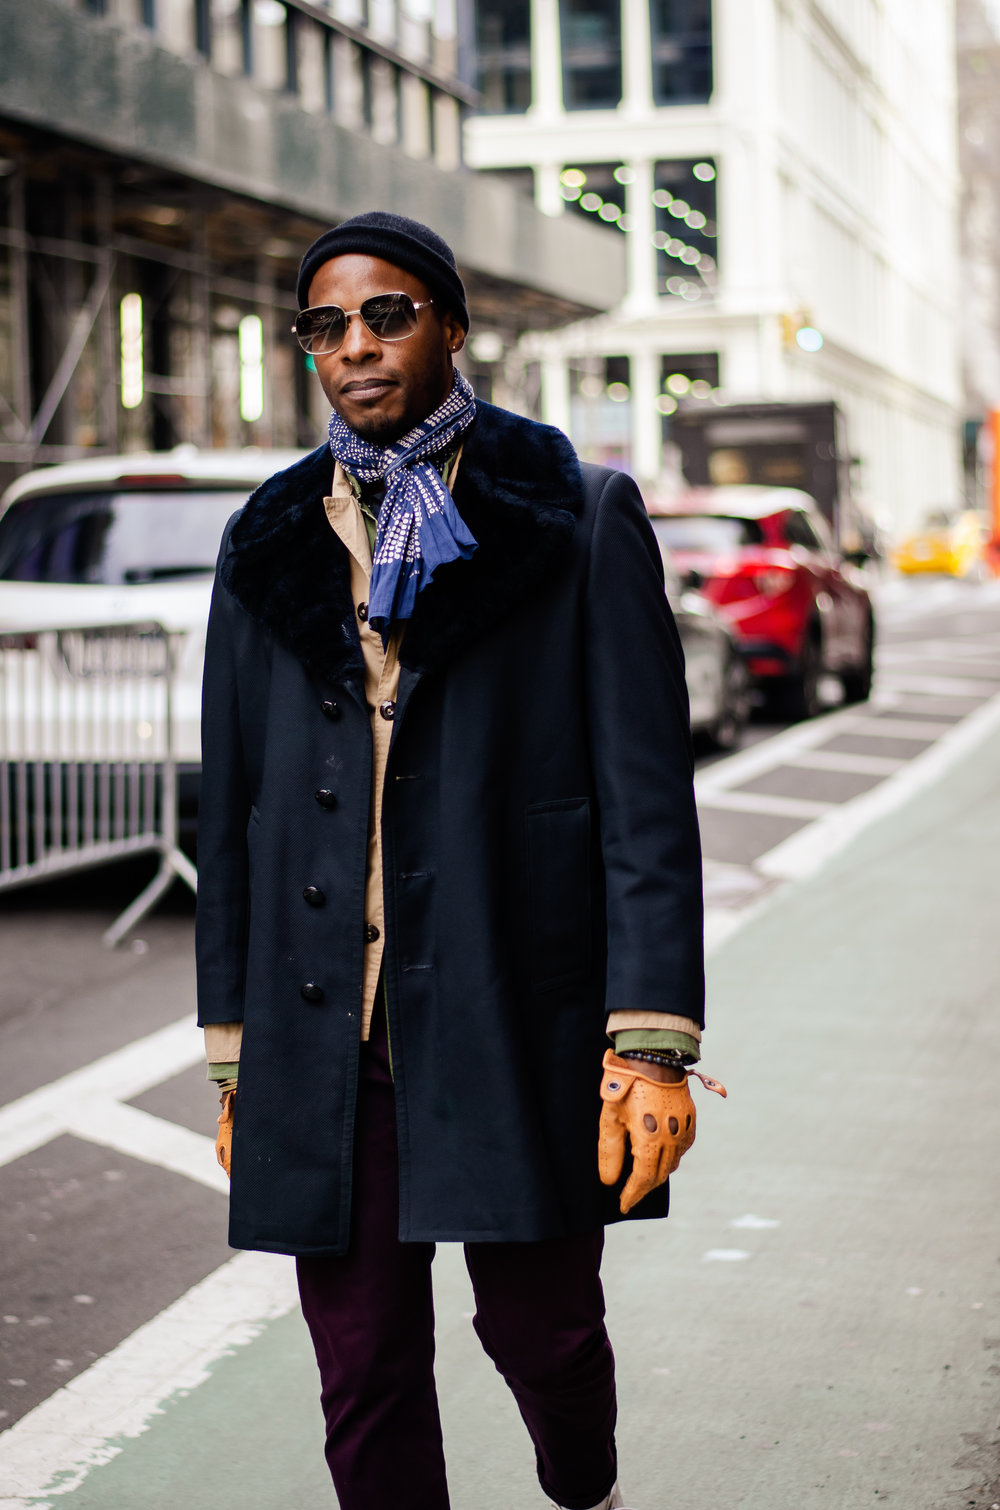 As a visual merchandiser, Raza understands the power of the accessory: The beanie, sunglasses, lightweight scarf, and driving gloves overlook the fact that he's wearing a simple mink-collared jacket.